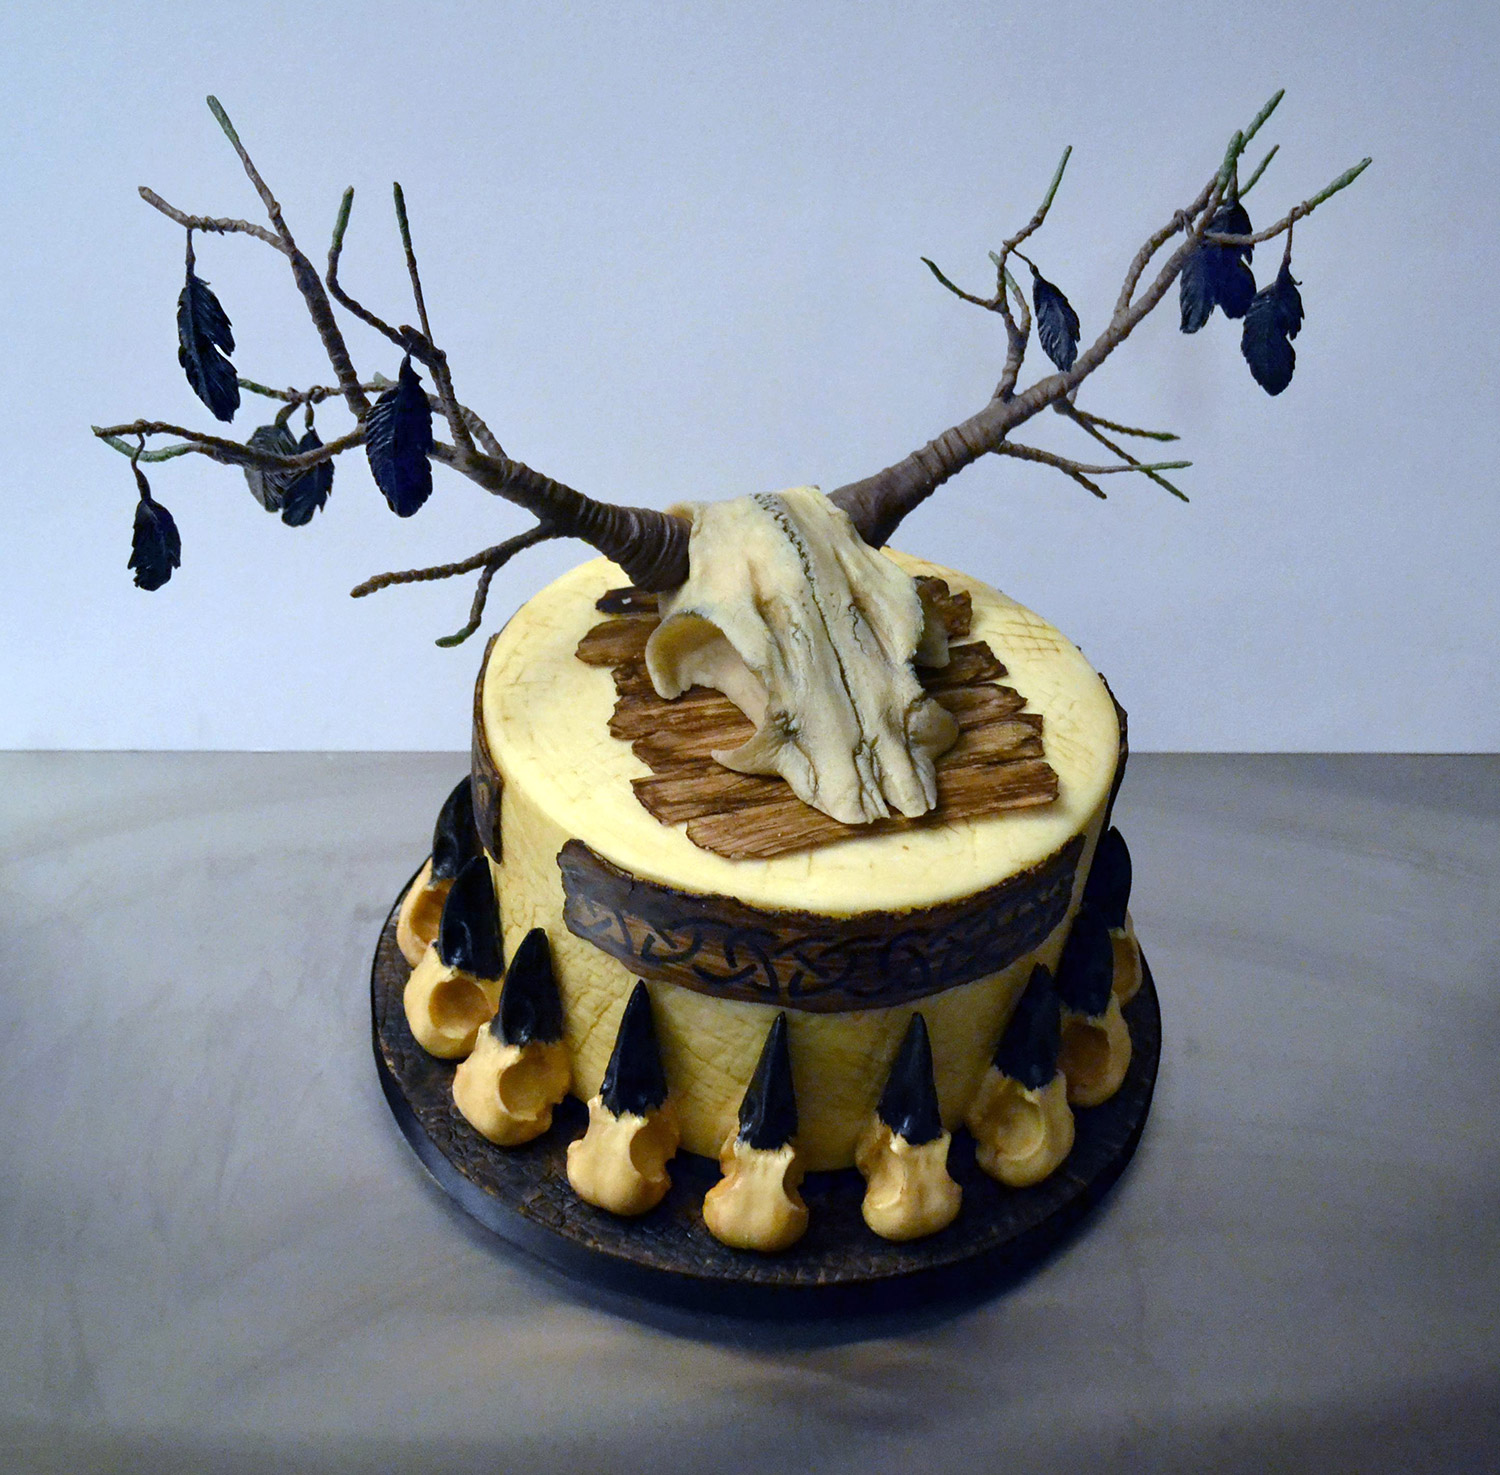 Annabel de Vetten, Conjurer's Kitchen - Viking cake